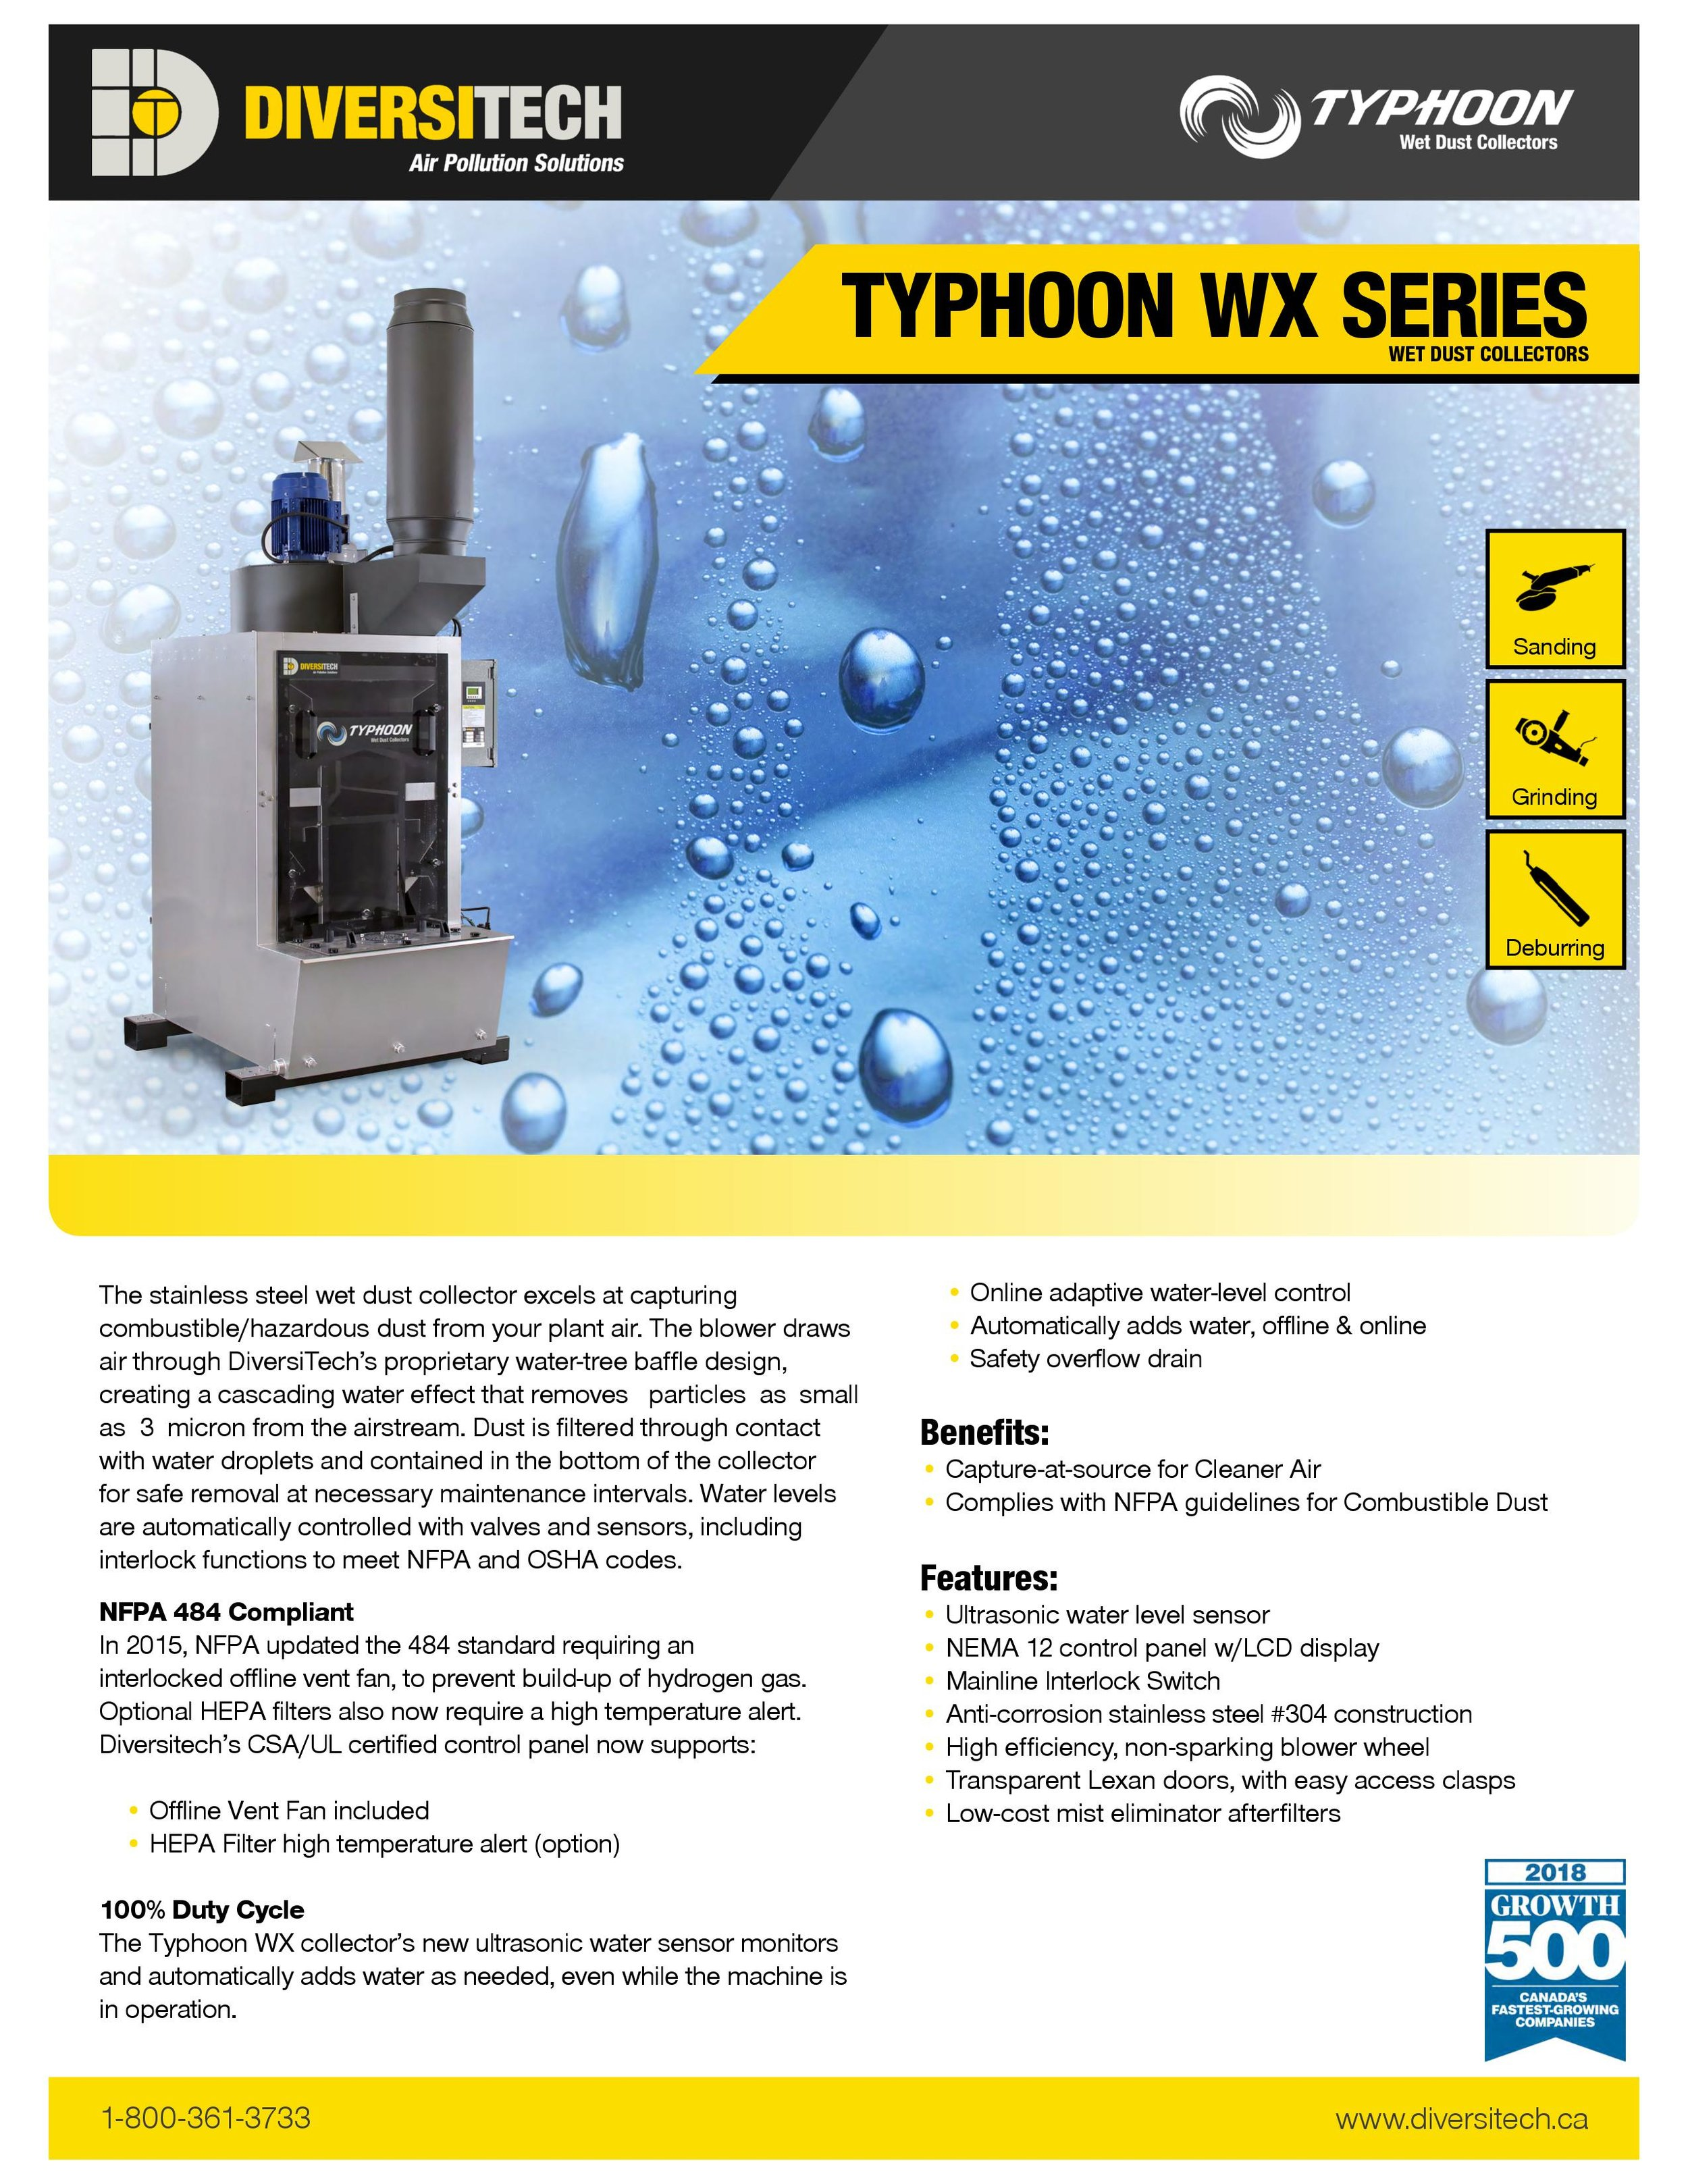 Typhoon-WX-Series-Product-1.jpg